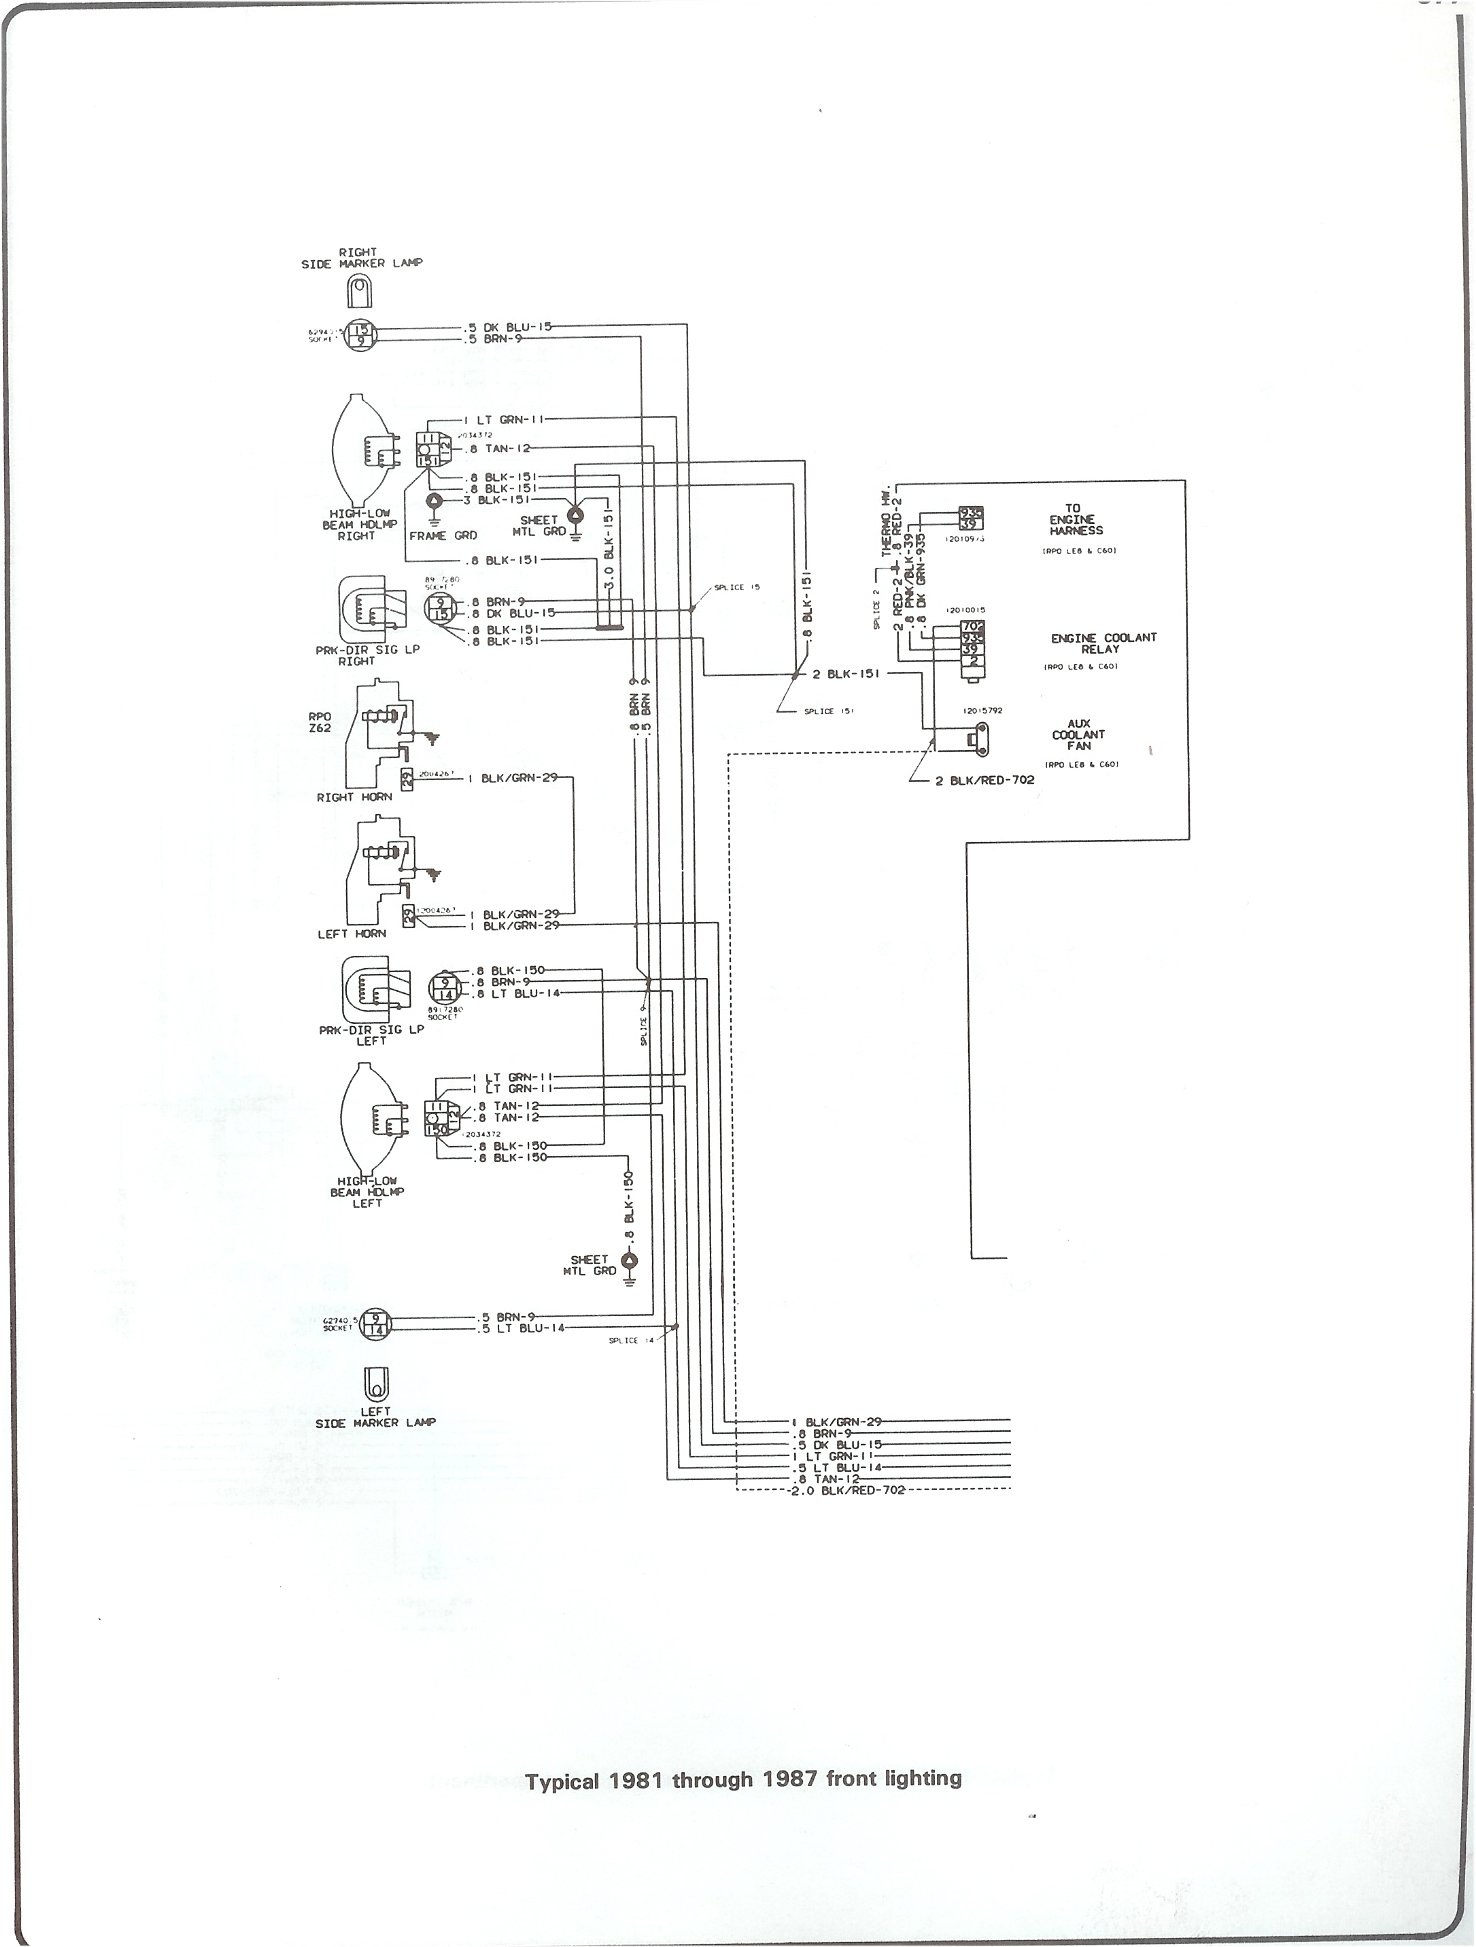 Light Wiring Diagram For 1986 El Camino Enthusiast Diagrams 1964 Complete 73 87 1976